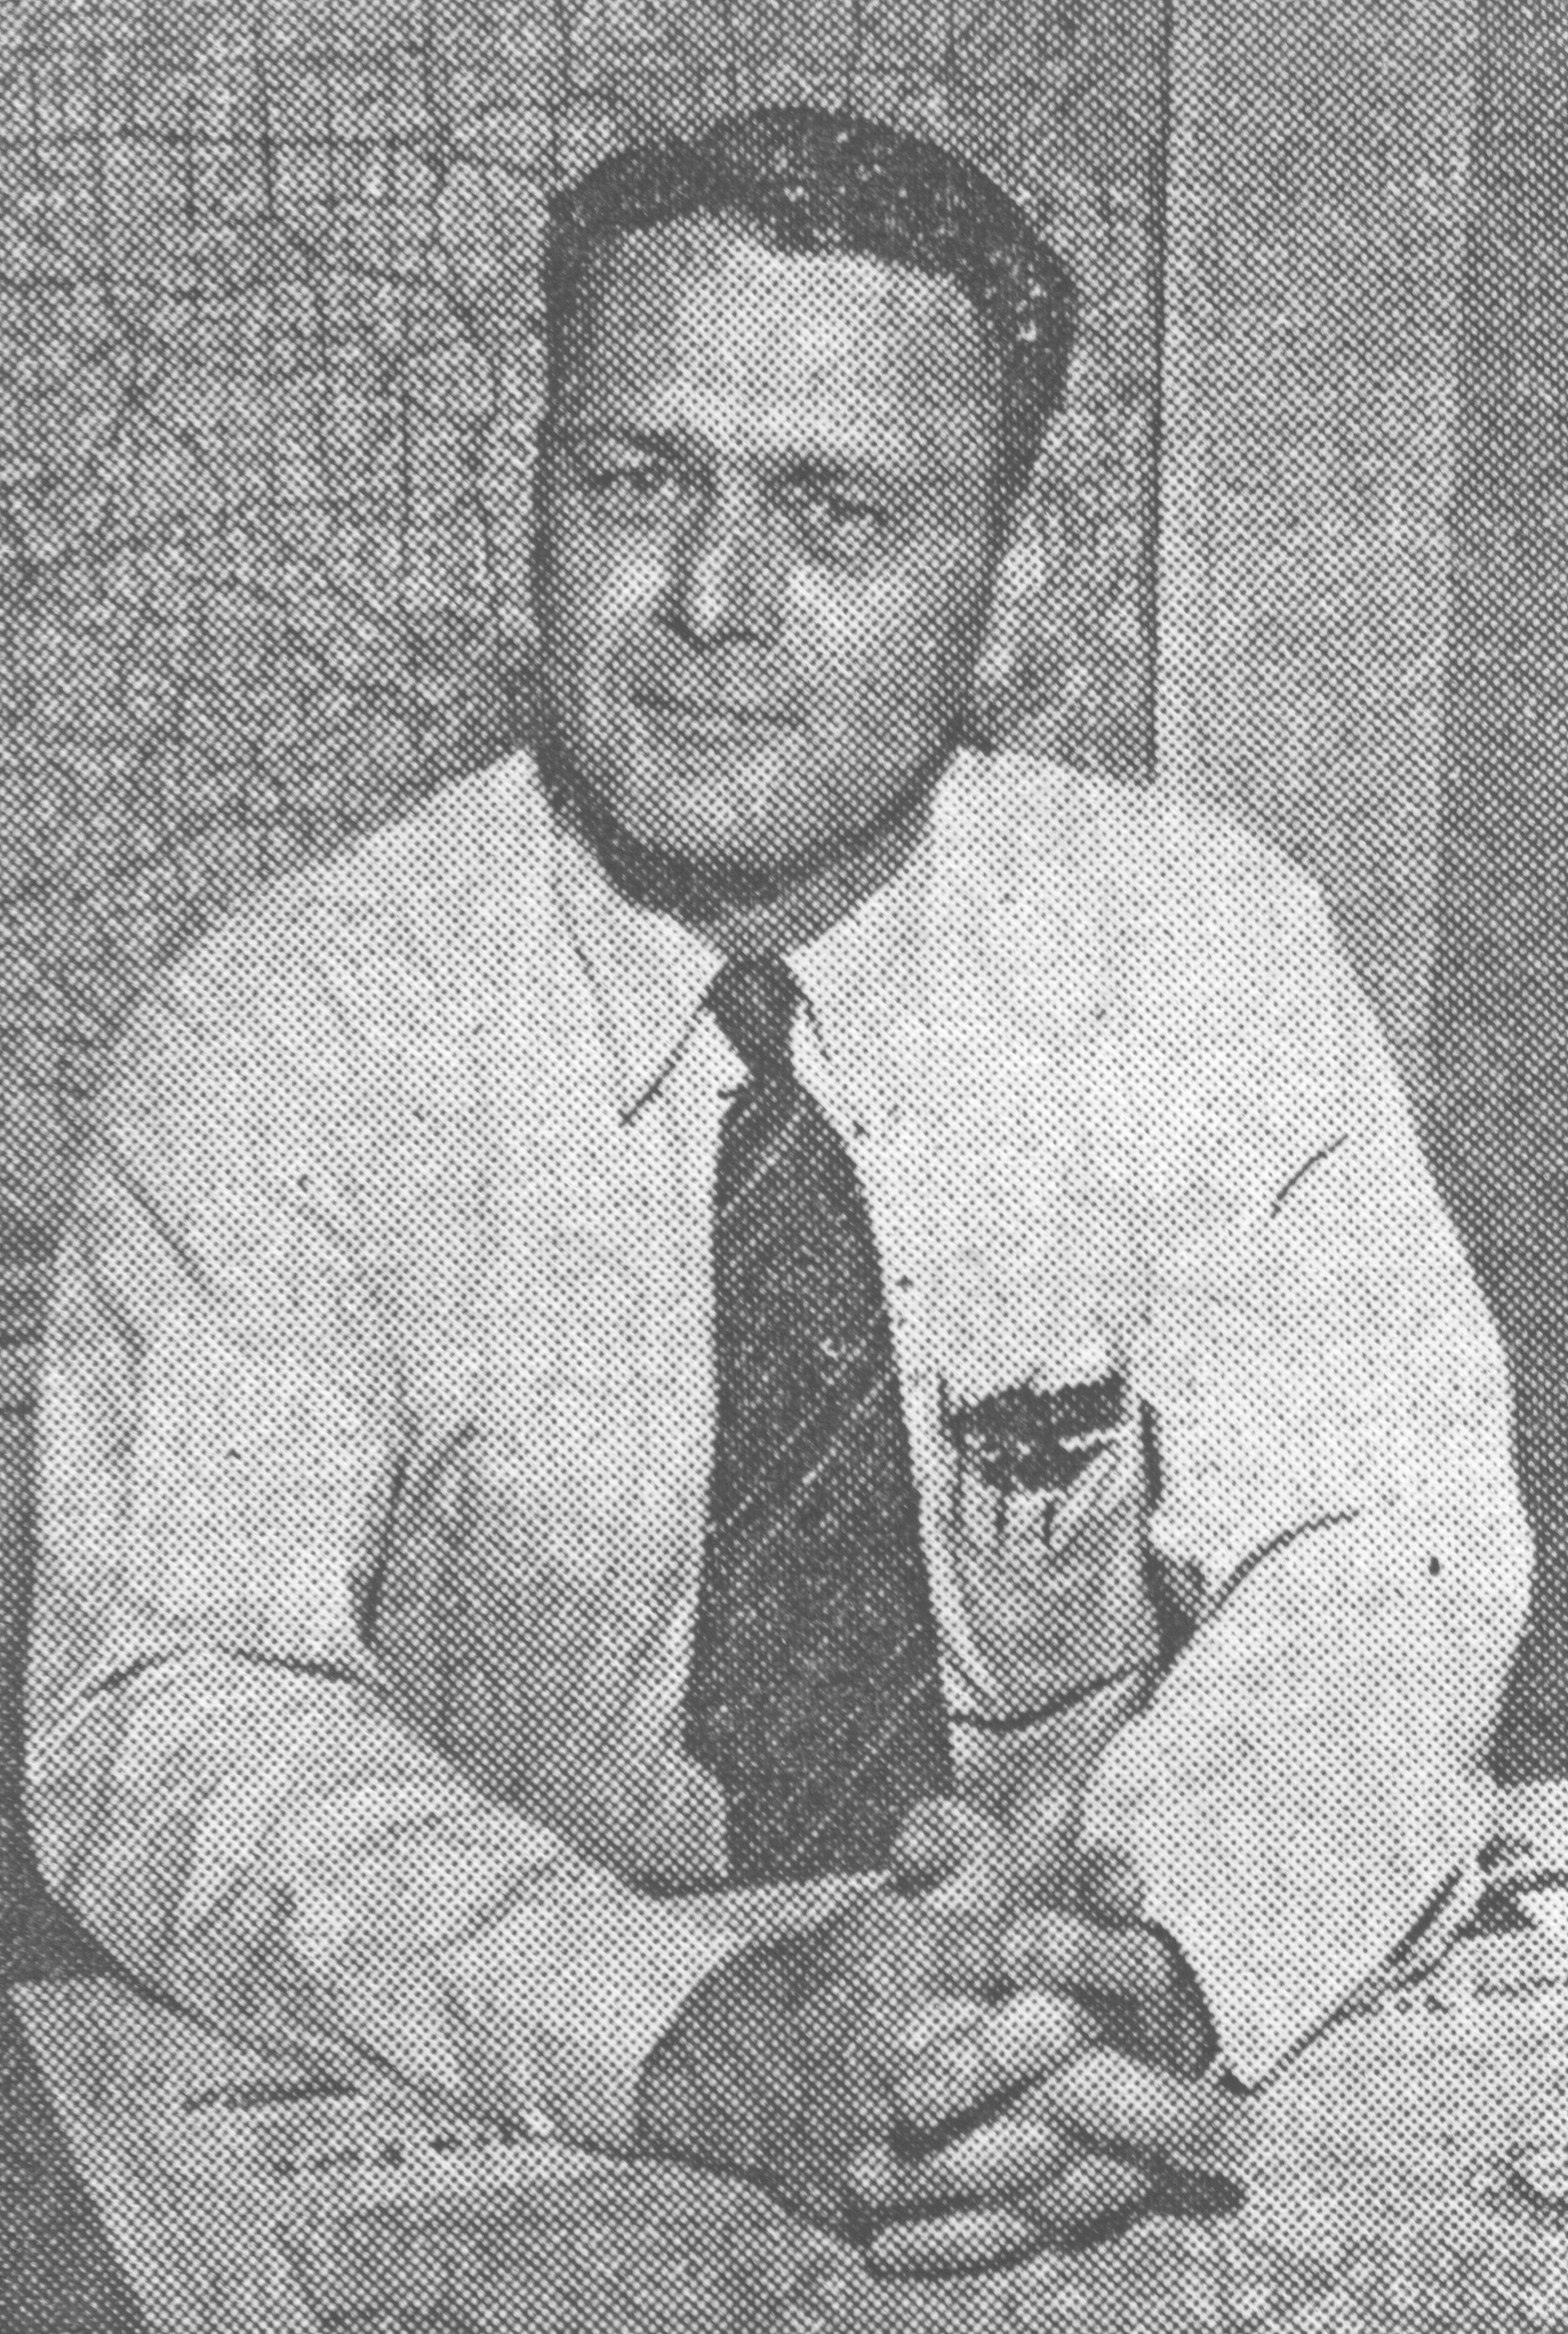 Herman T. (Bill) Hagestad